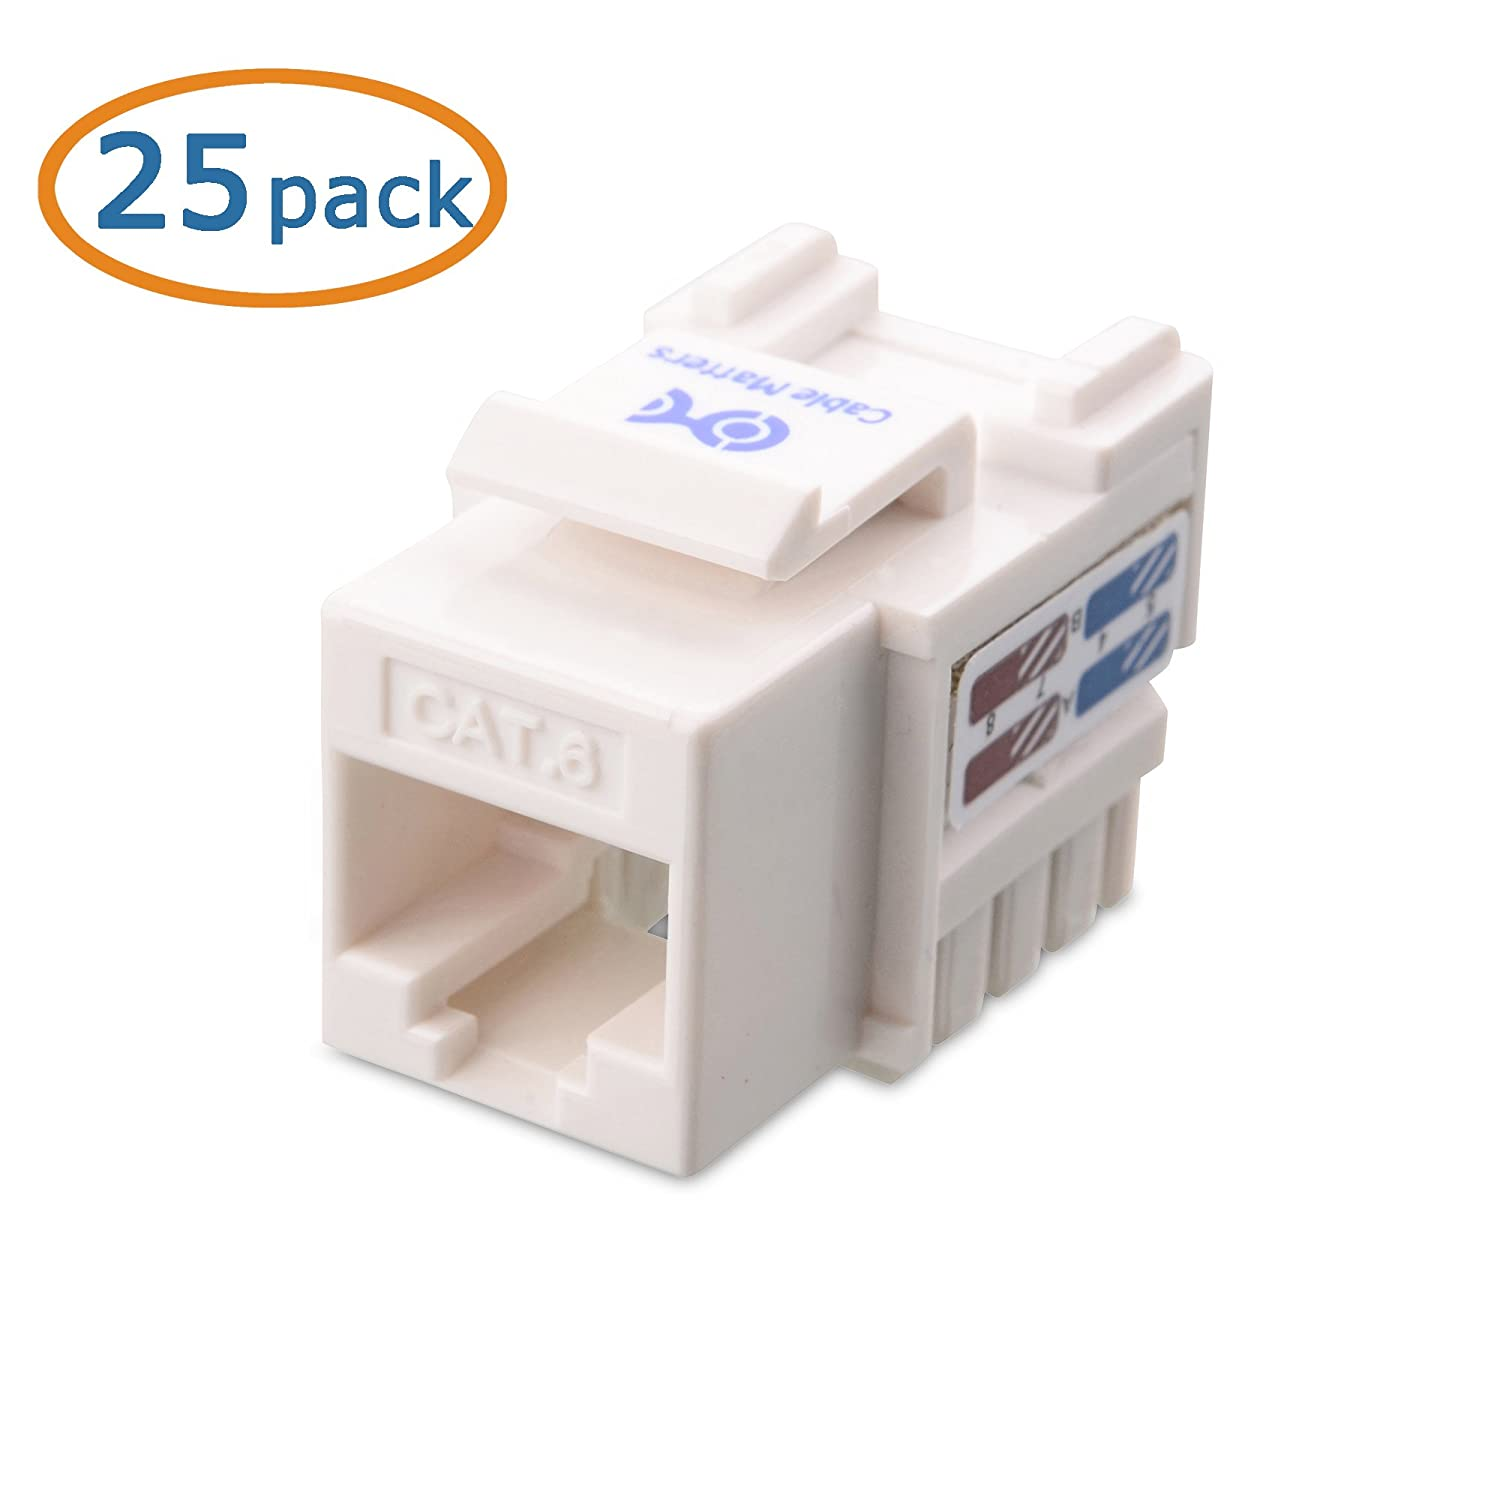 Cable Matters Ul Listed 25 Pack Cat6 Rj45 Keystone 110 Punch Down Diagram Jack Wiring In White And Stand Computers Accessories